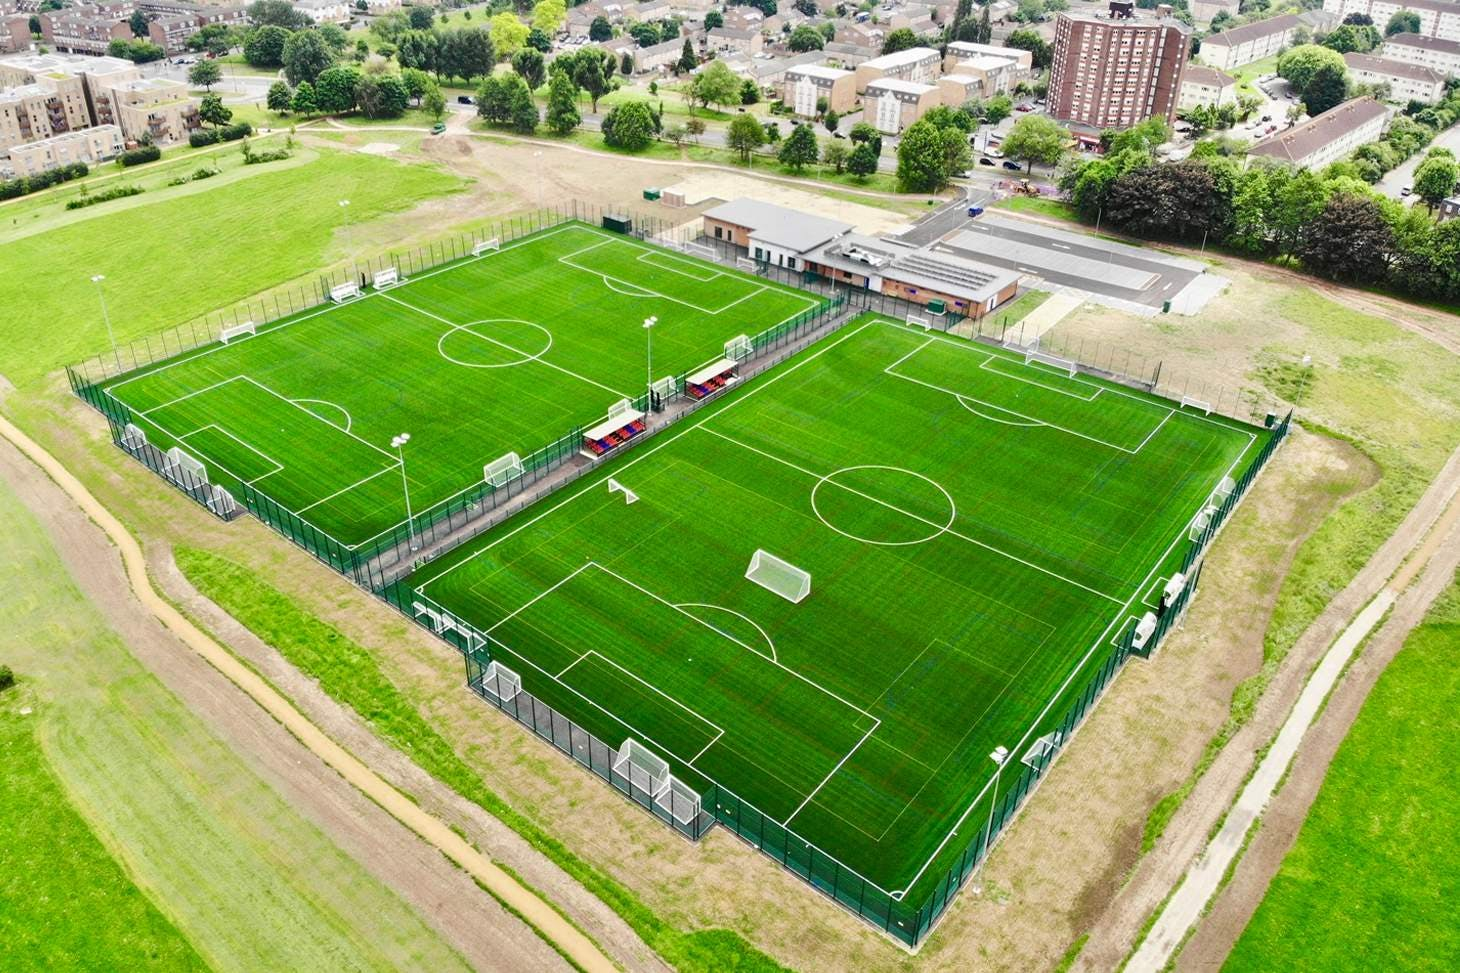 Rectory Park 11 a side | 3G Astroturf football pitch